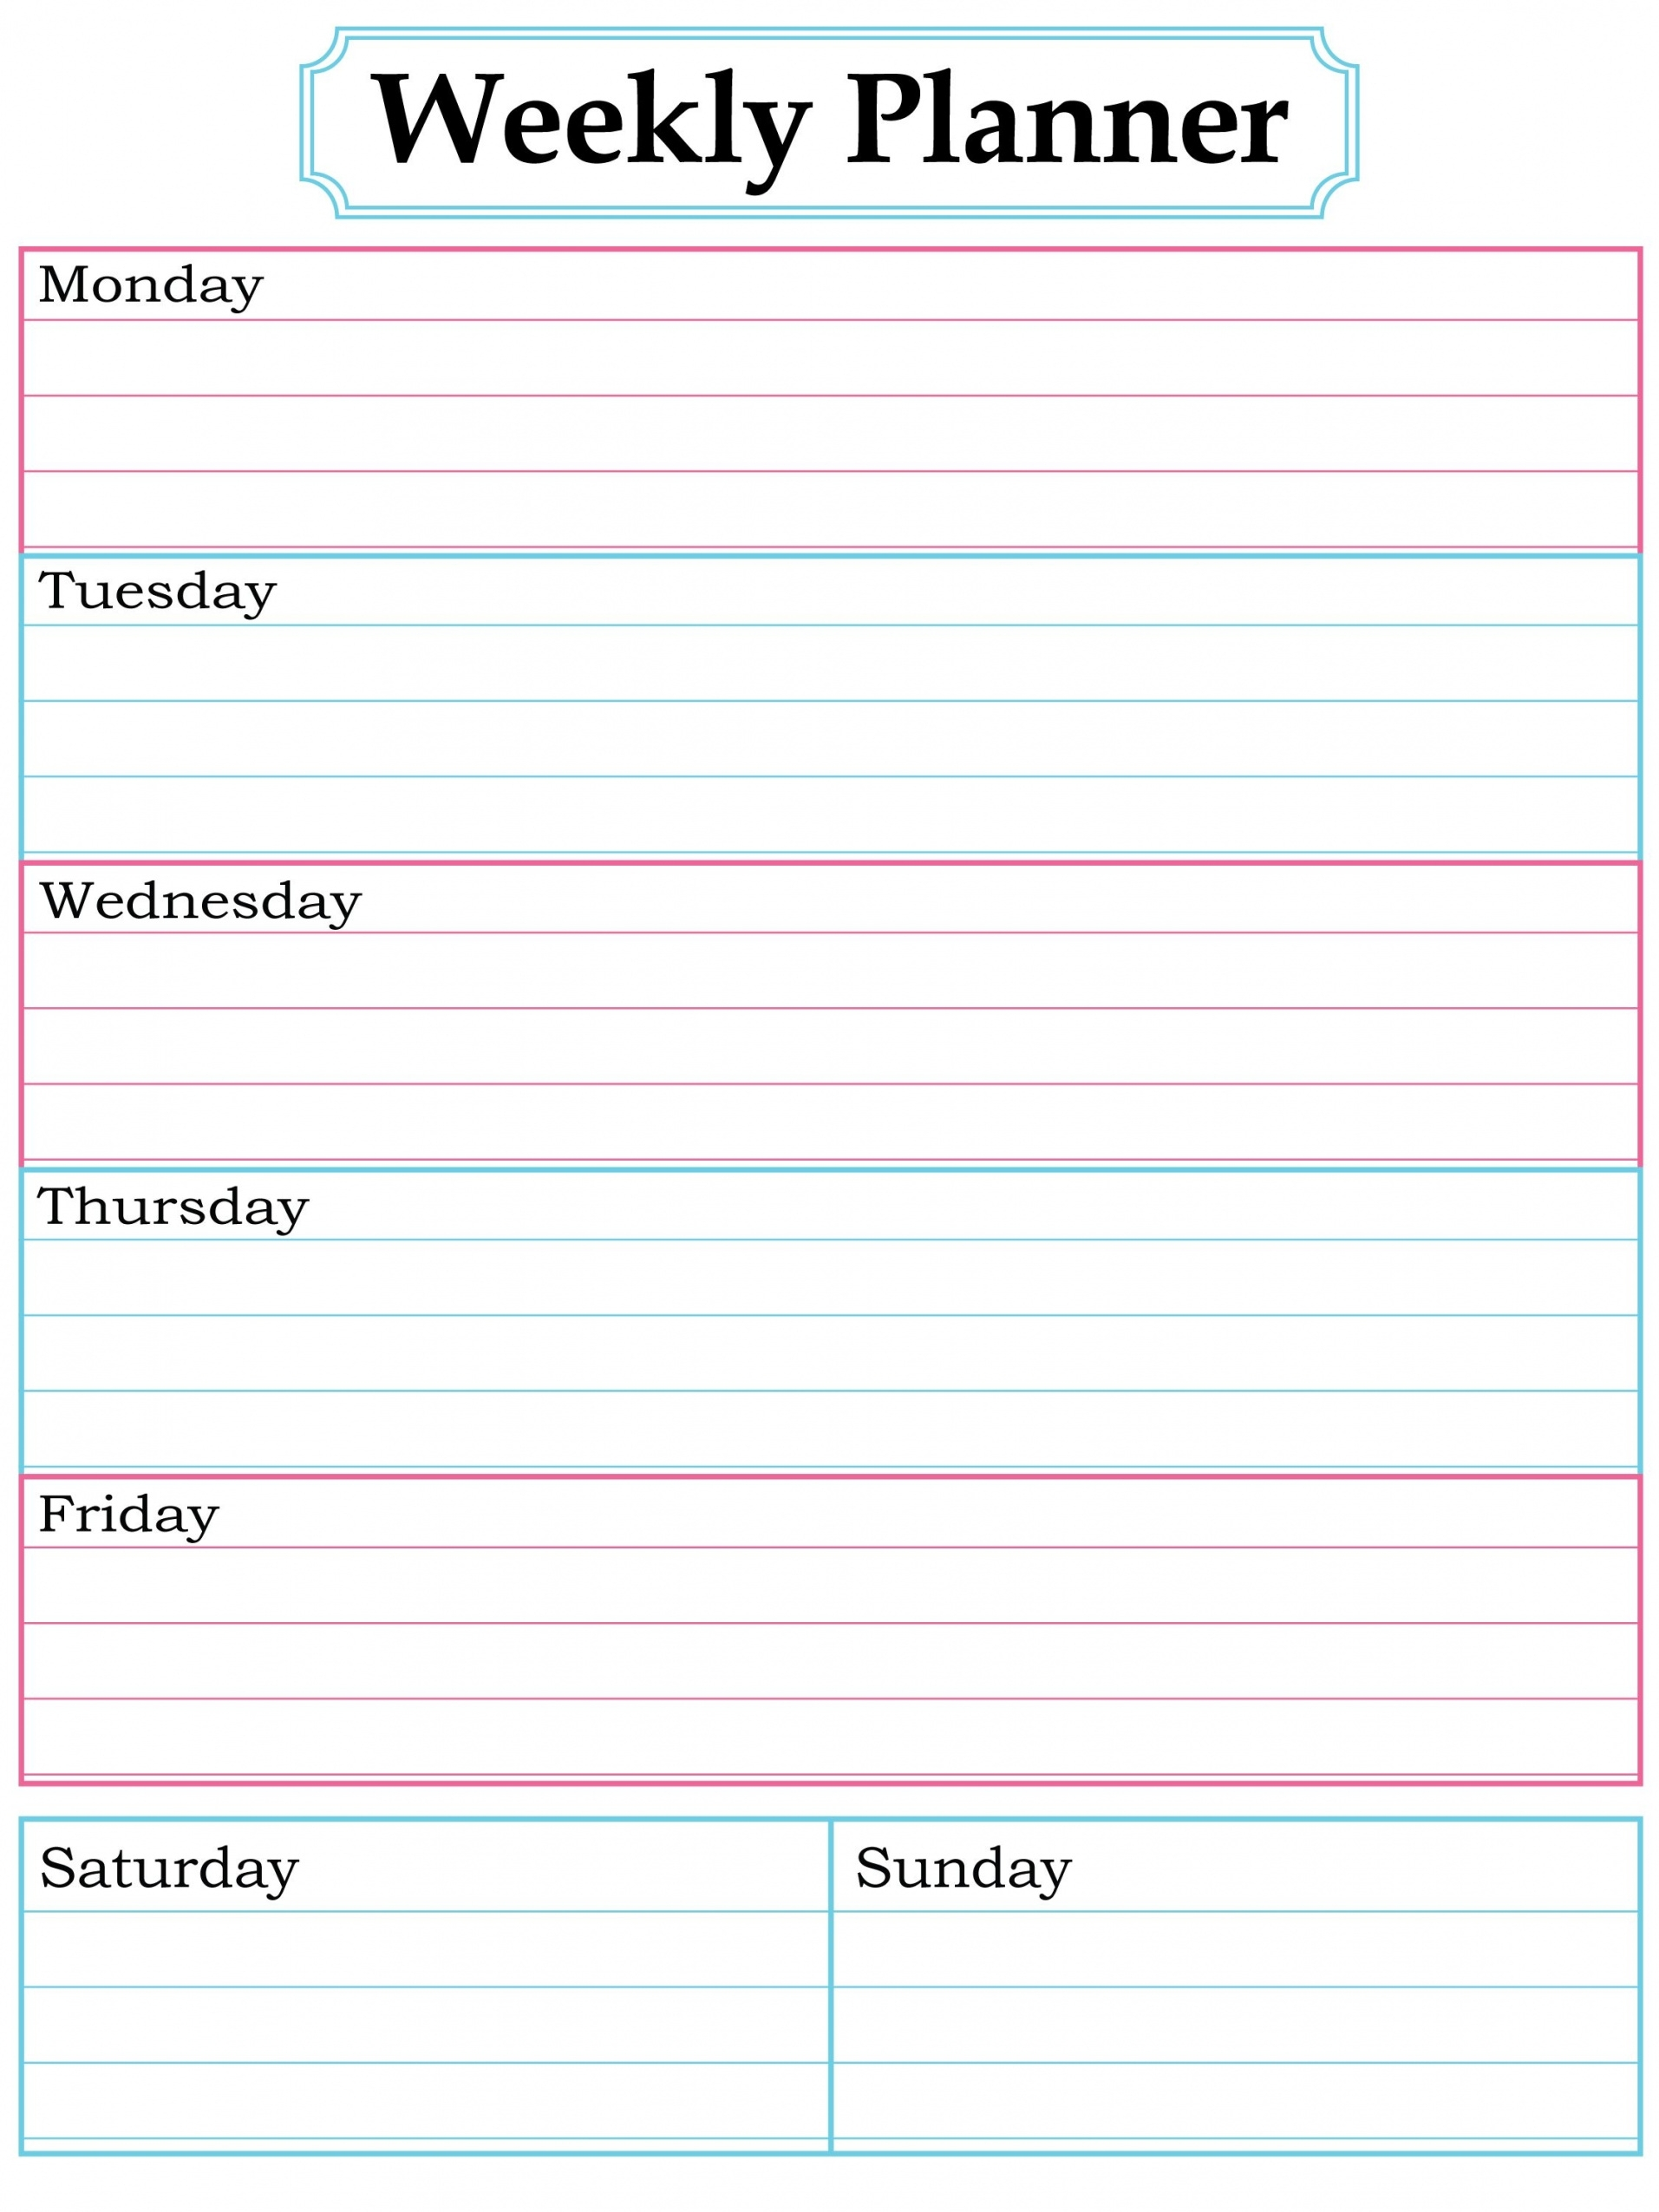 Free Printable Weekly Calendar Templates – Bino.9Terrains.co Simple within Weekly Schedule Template Free To Print